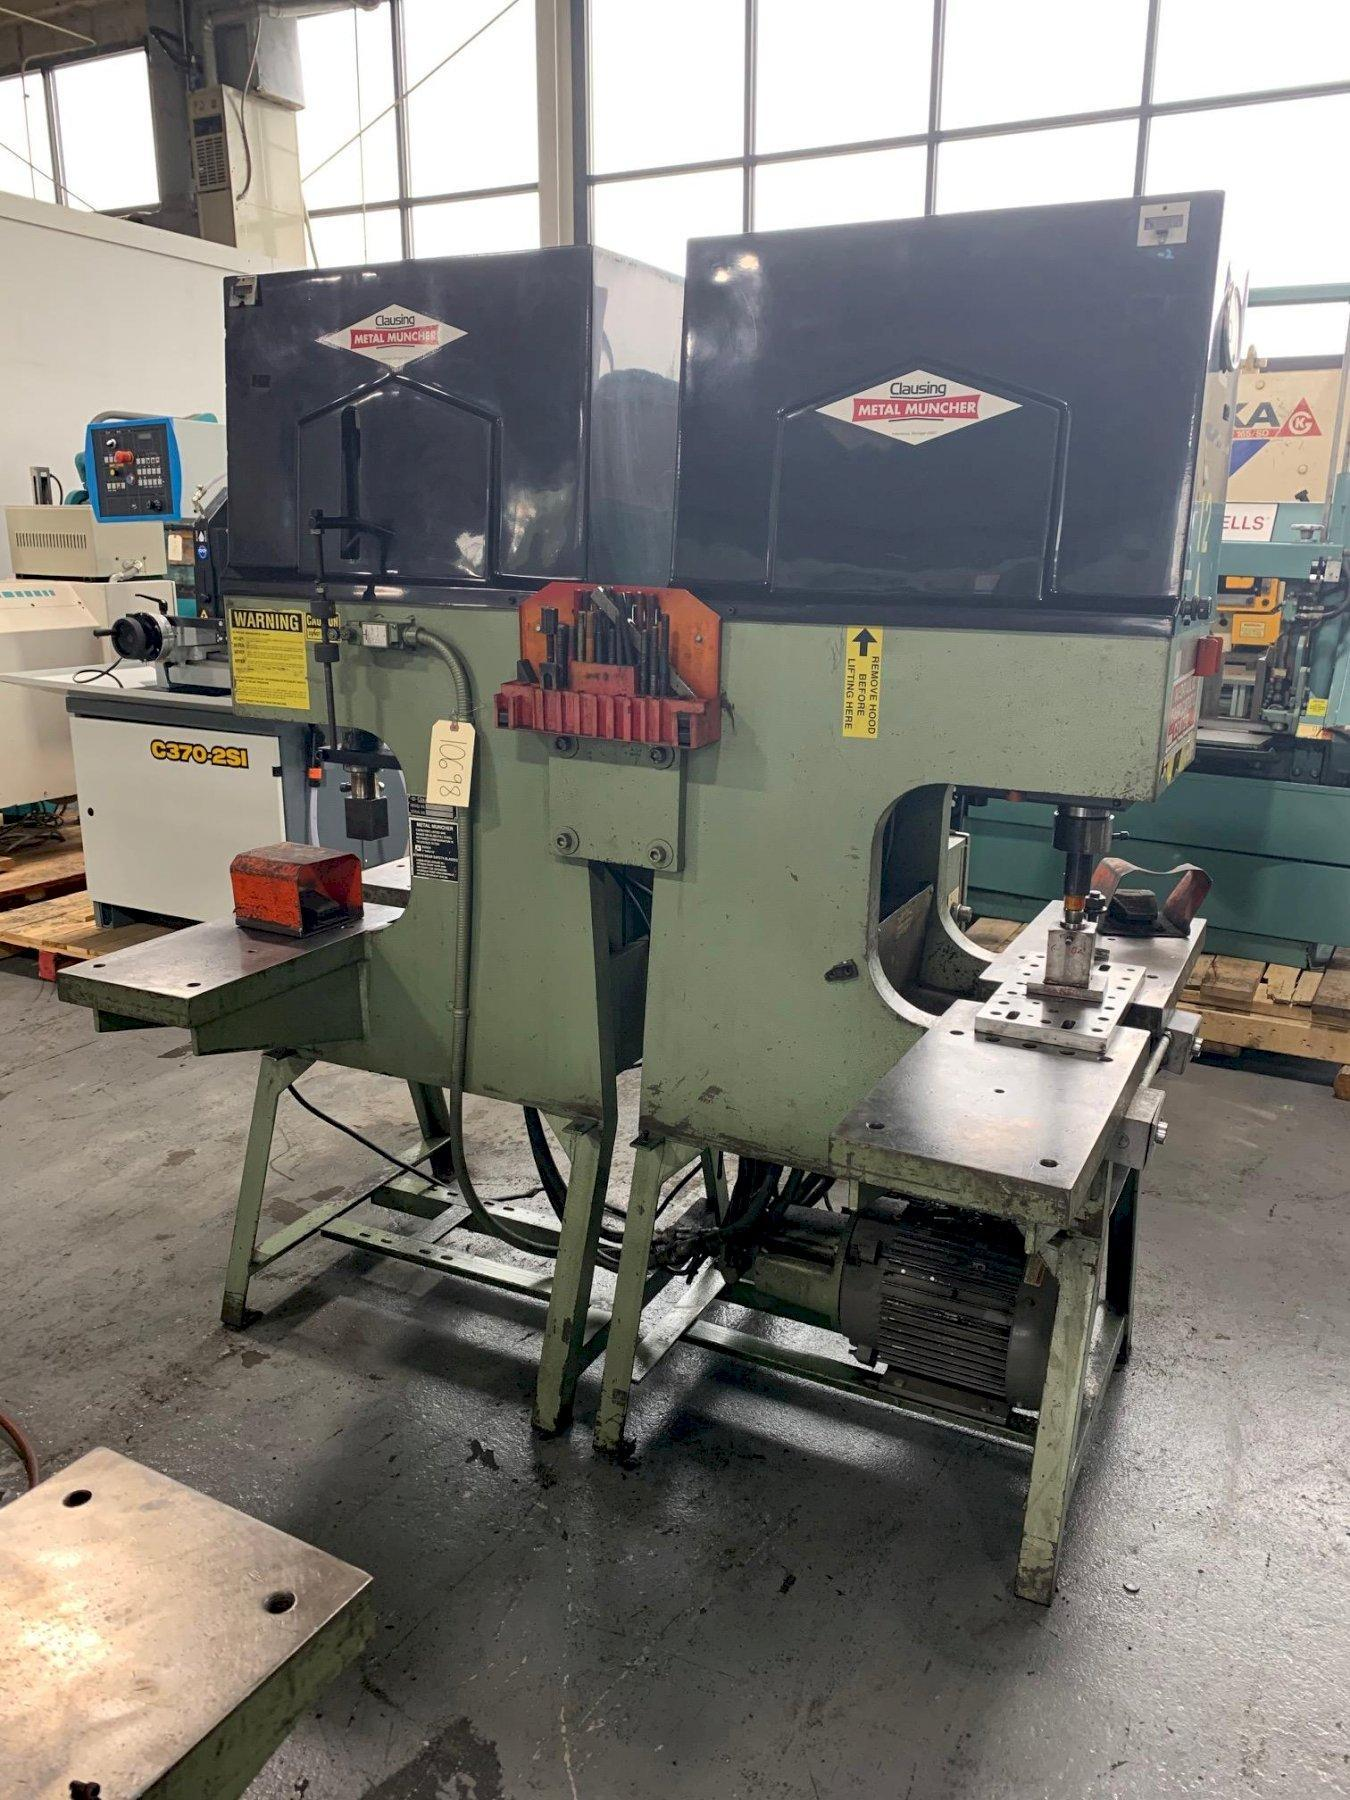 USED METAL MUNCHER DOUBLE END 70 TON HYDRAULIC PUNCH MODEL DP 70, Stock# 10698 , Year 2000